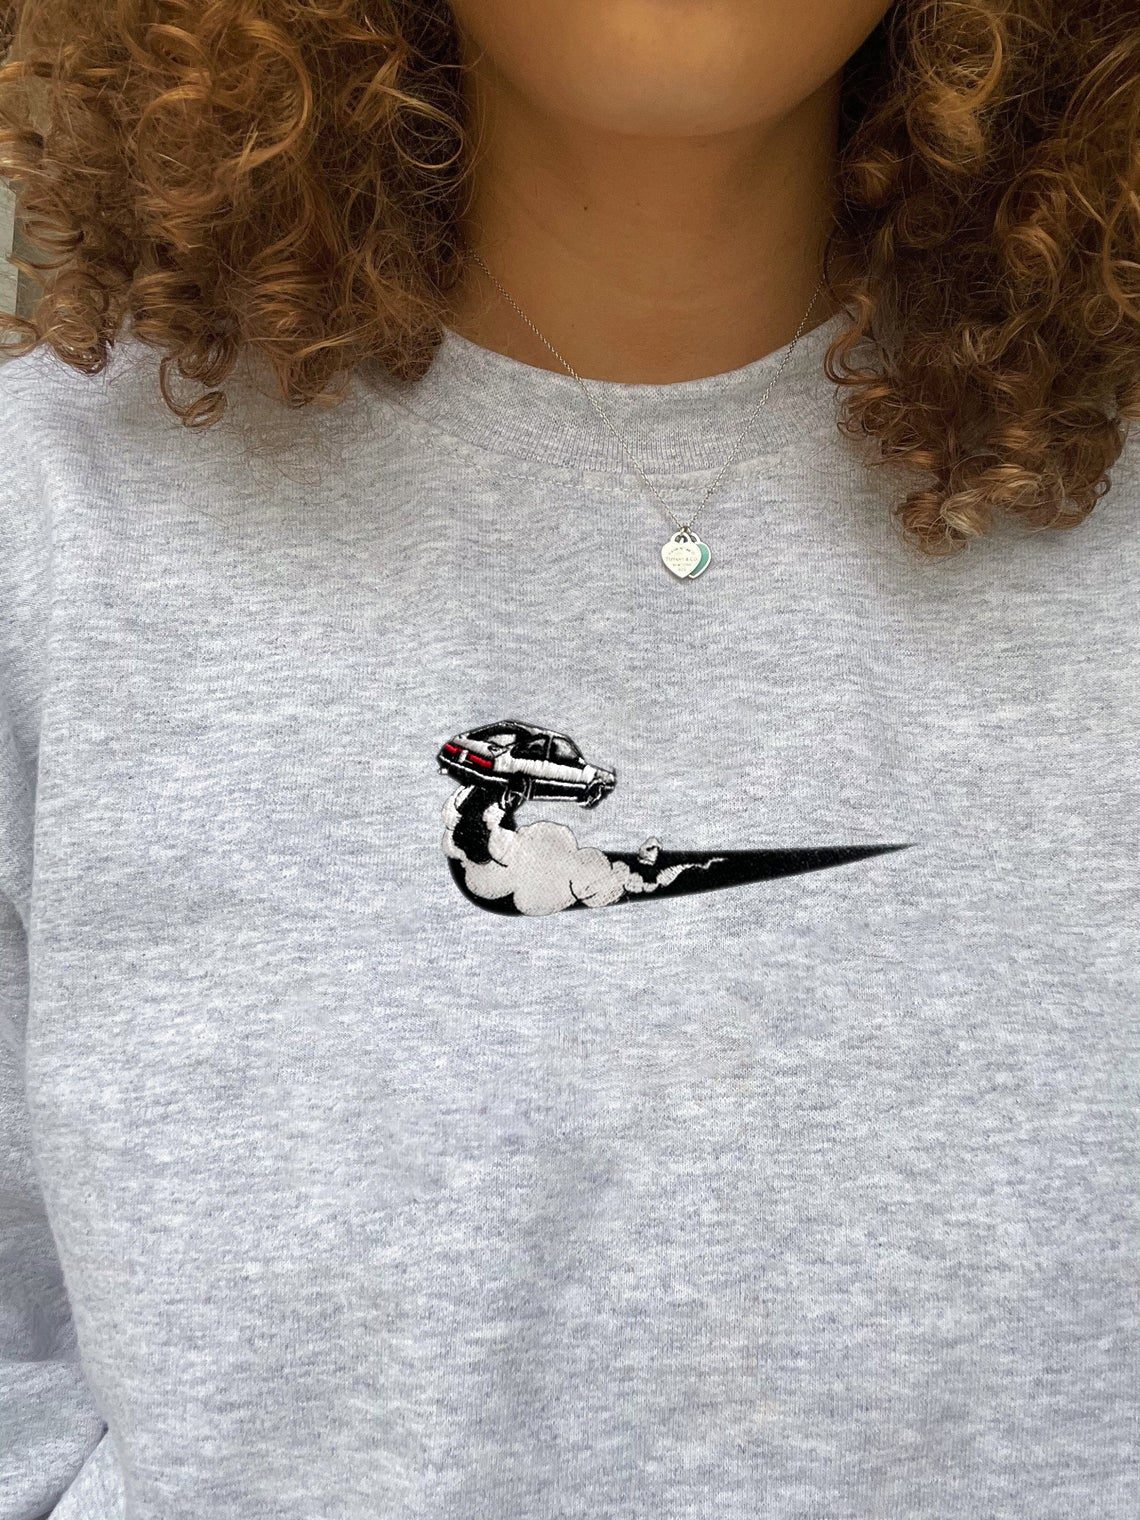 Nike And Initial D Inspired Ae86 Crewneck Sweatshirt/t-shirt/hoodie Embroidery